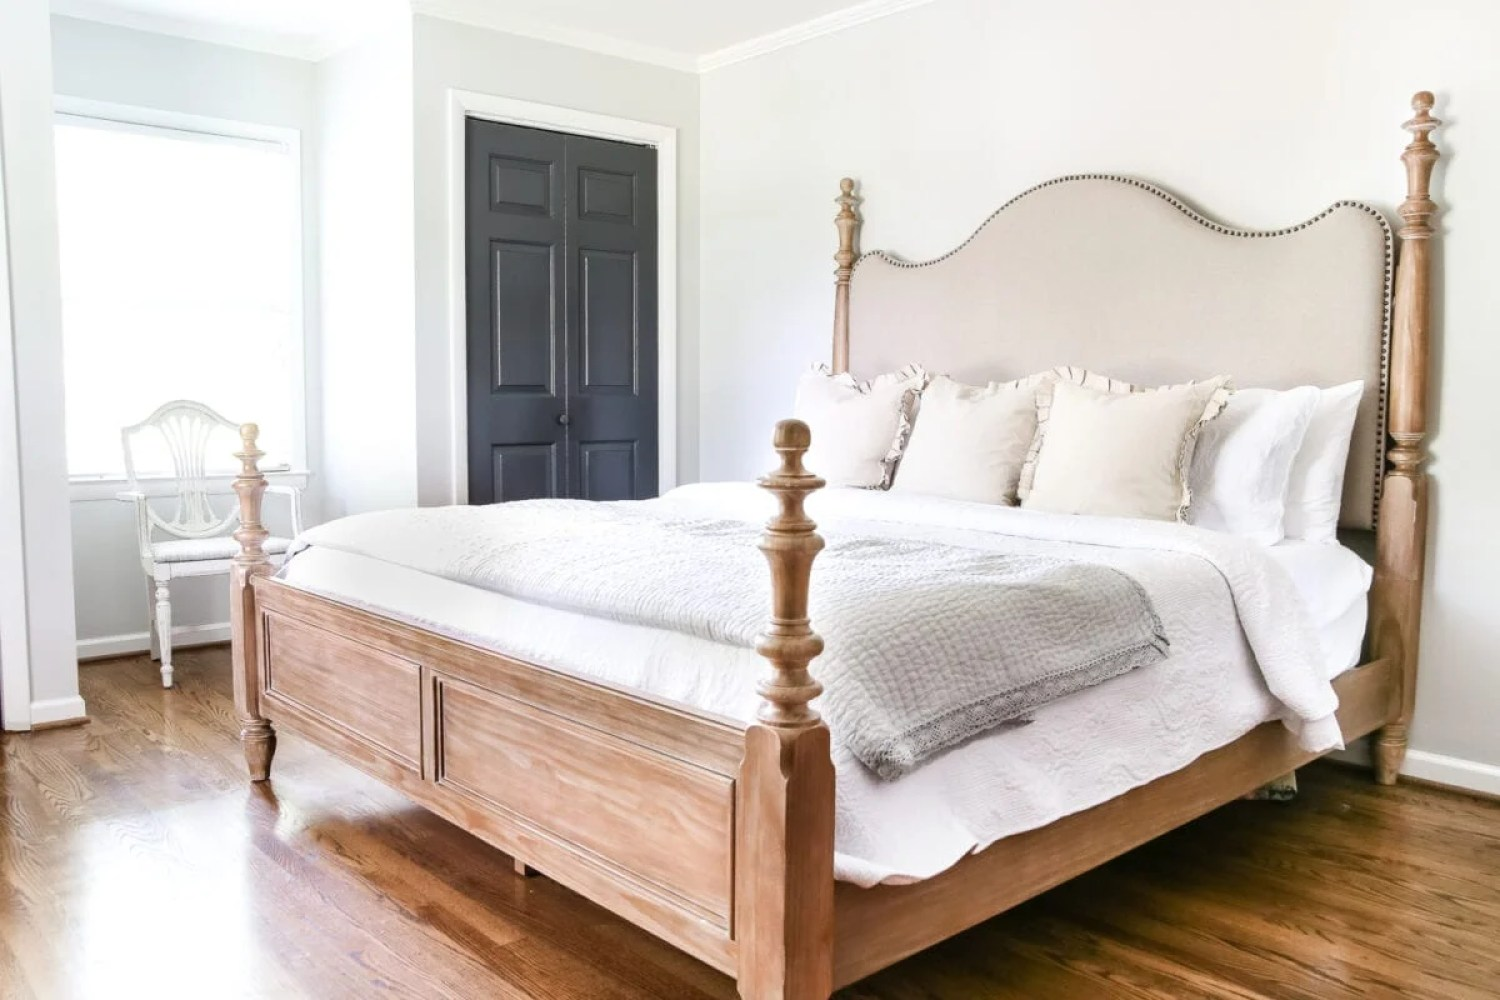 Master Bedroom Update: Pickled Pine Furniture | blesserhouse.com - The beginnings of a master bedroom makeover with whitewashed pine furniture.